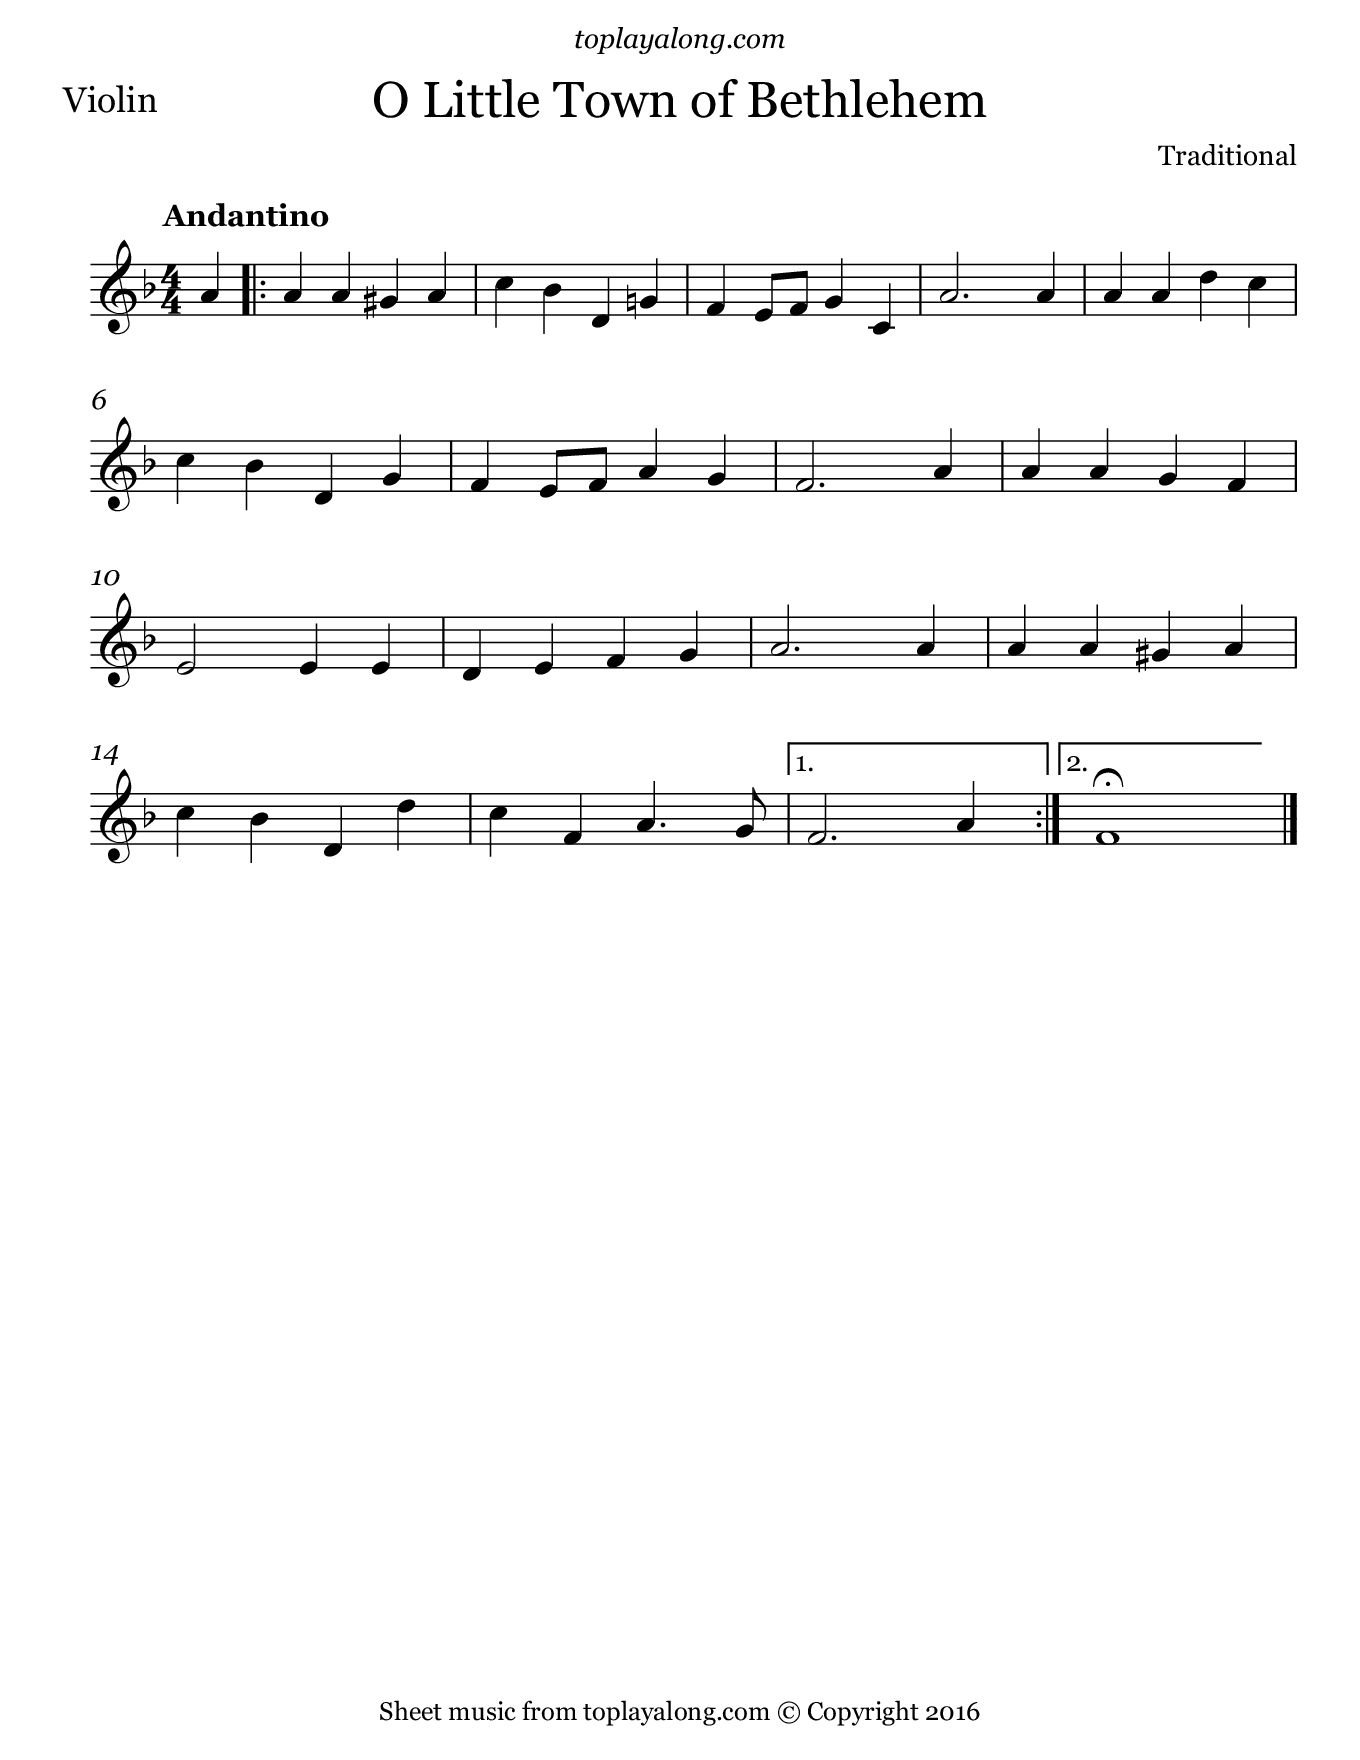 O Little Town of Bethlehem. Sheet music for Violin, page 1.